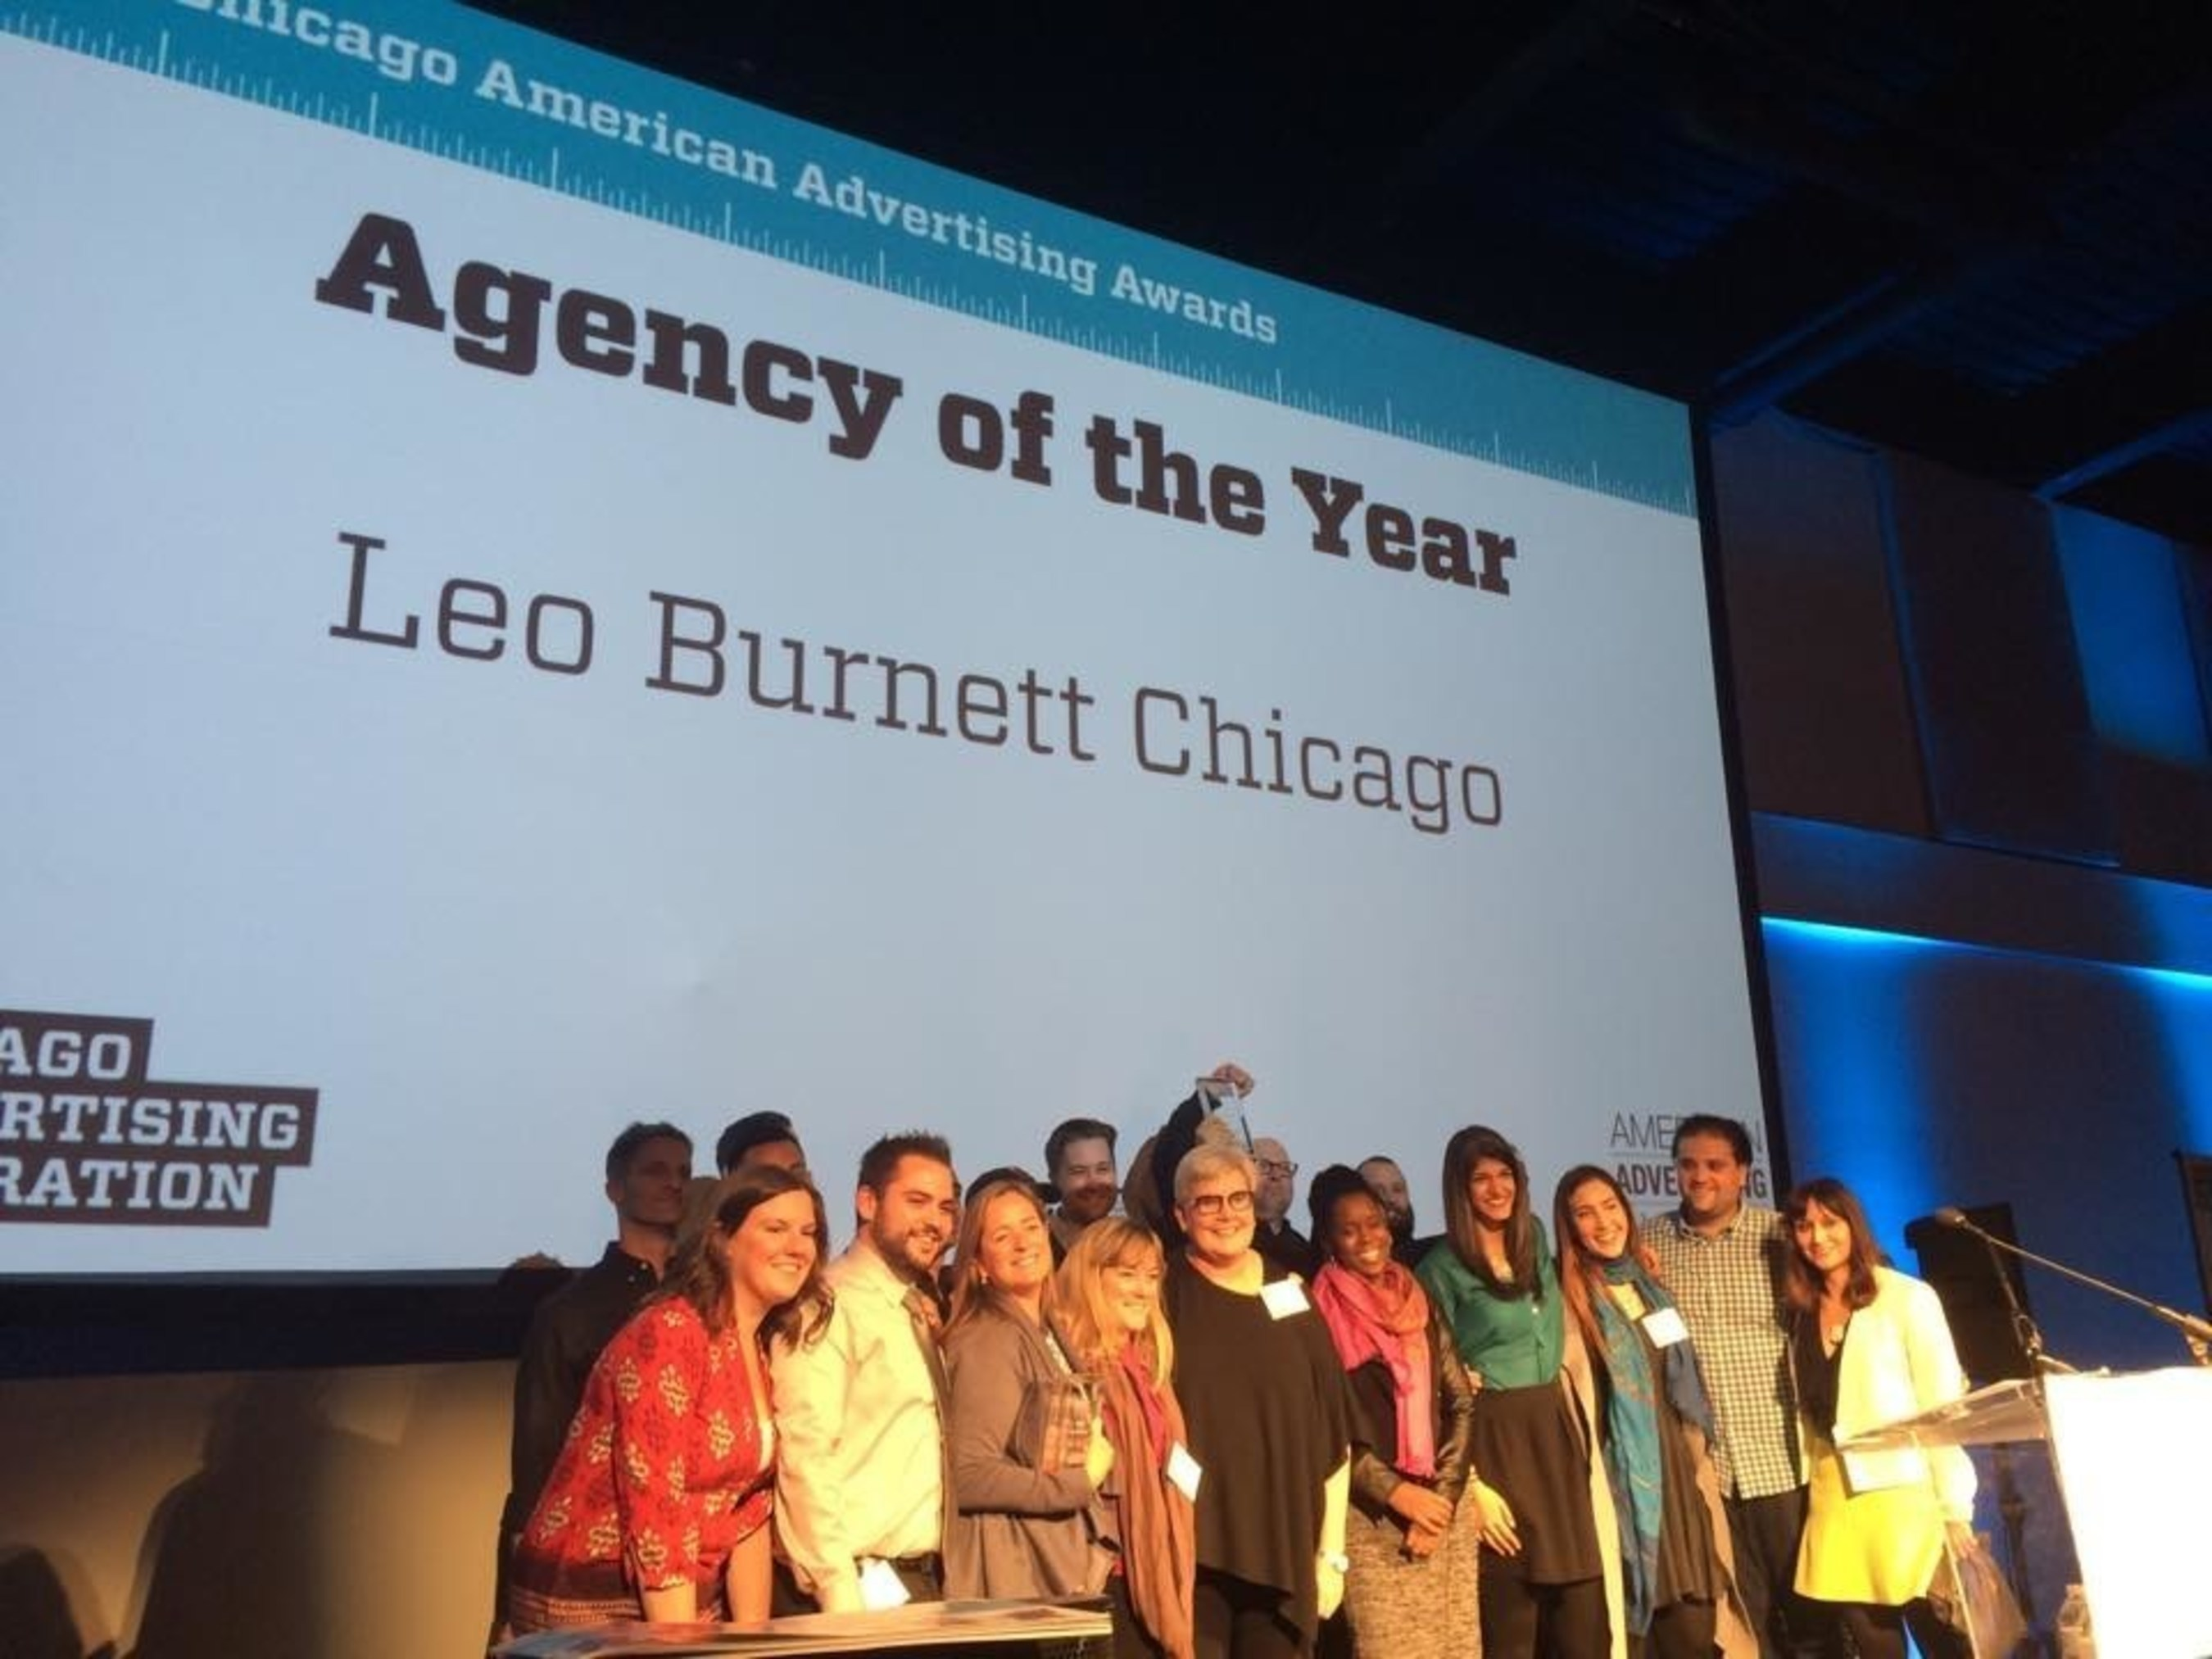 susan credle chief creative officer leo burnett. Leo Burnett Chicago Named Agency Of The Year At Advertising Federation\u0027s American Awards Susan Credle Chief Creative Officer